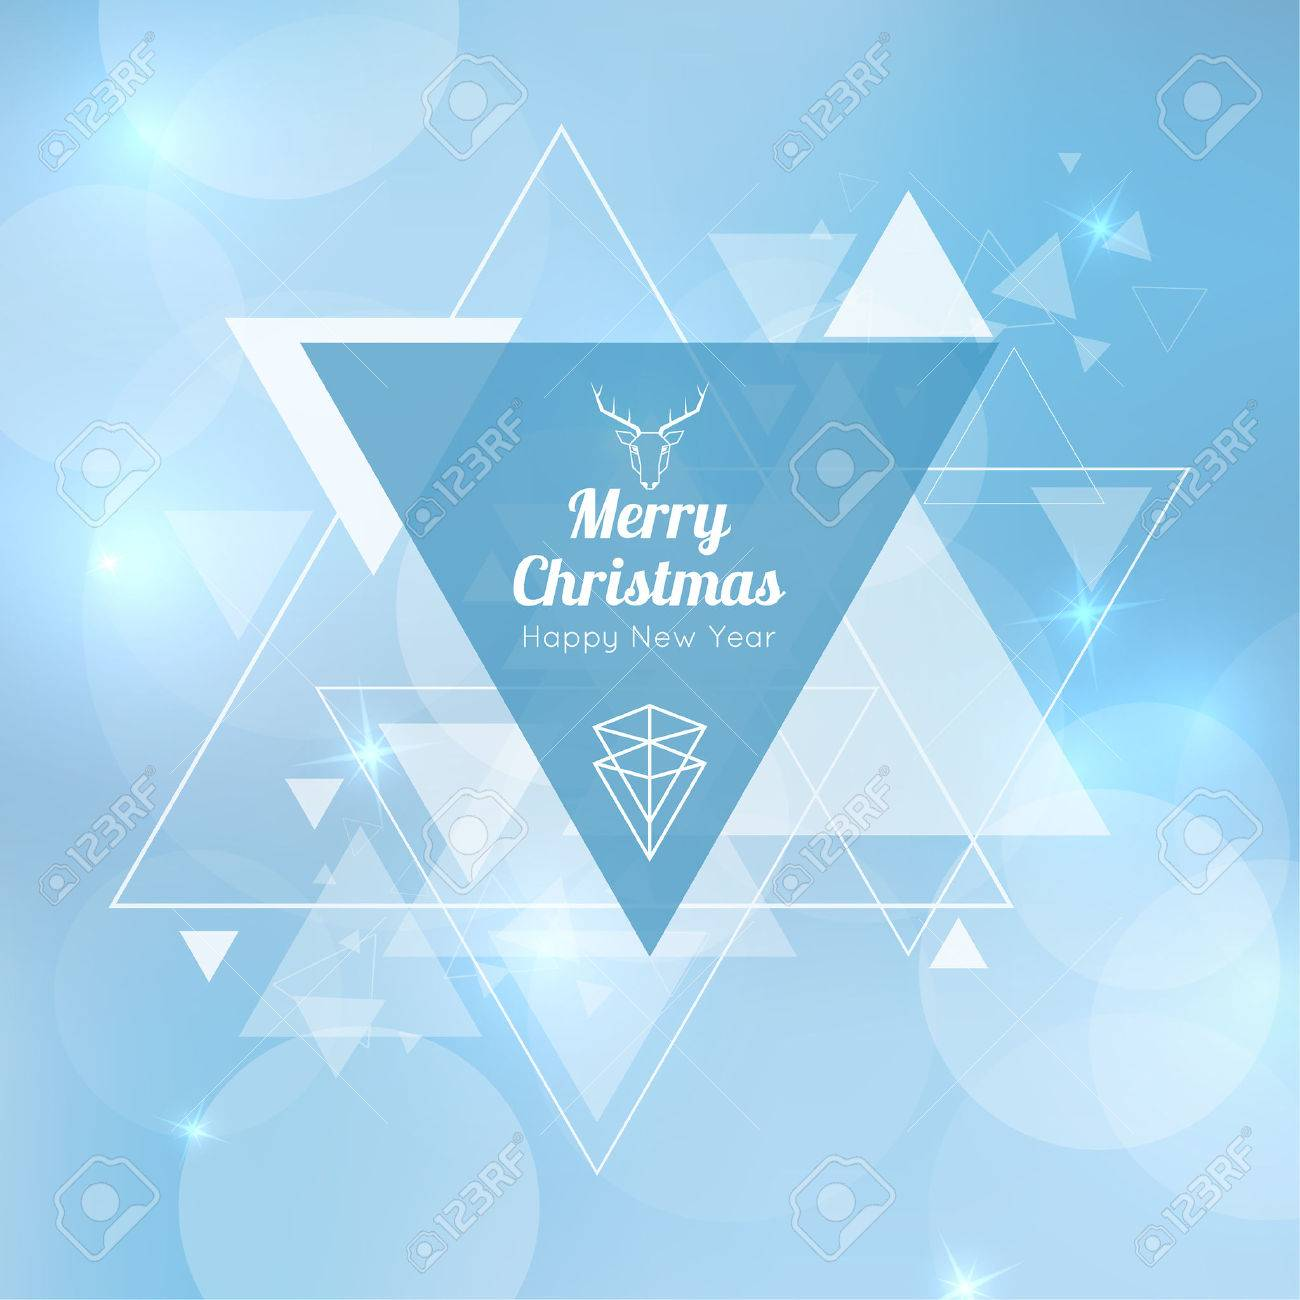 Abstract blurred vector background with triangular banner and hovering triangles. Merry Christmas. Happy New Year. - 47784458